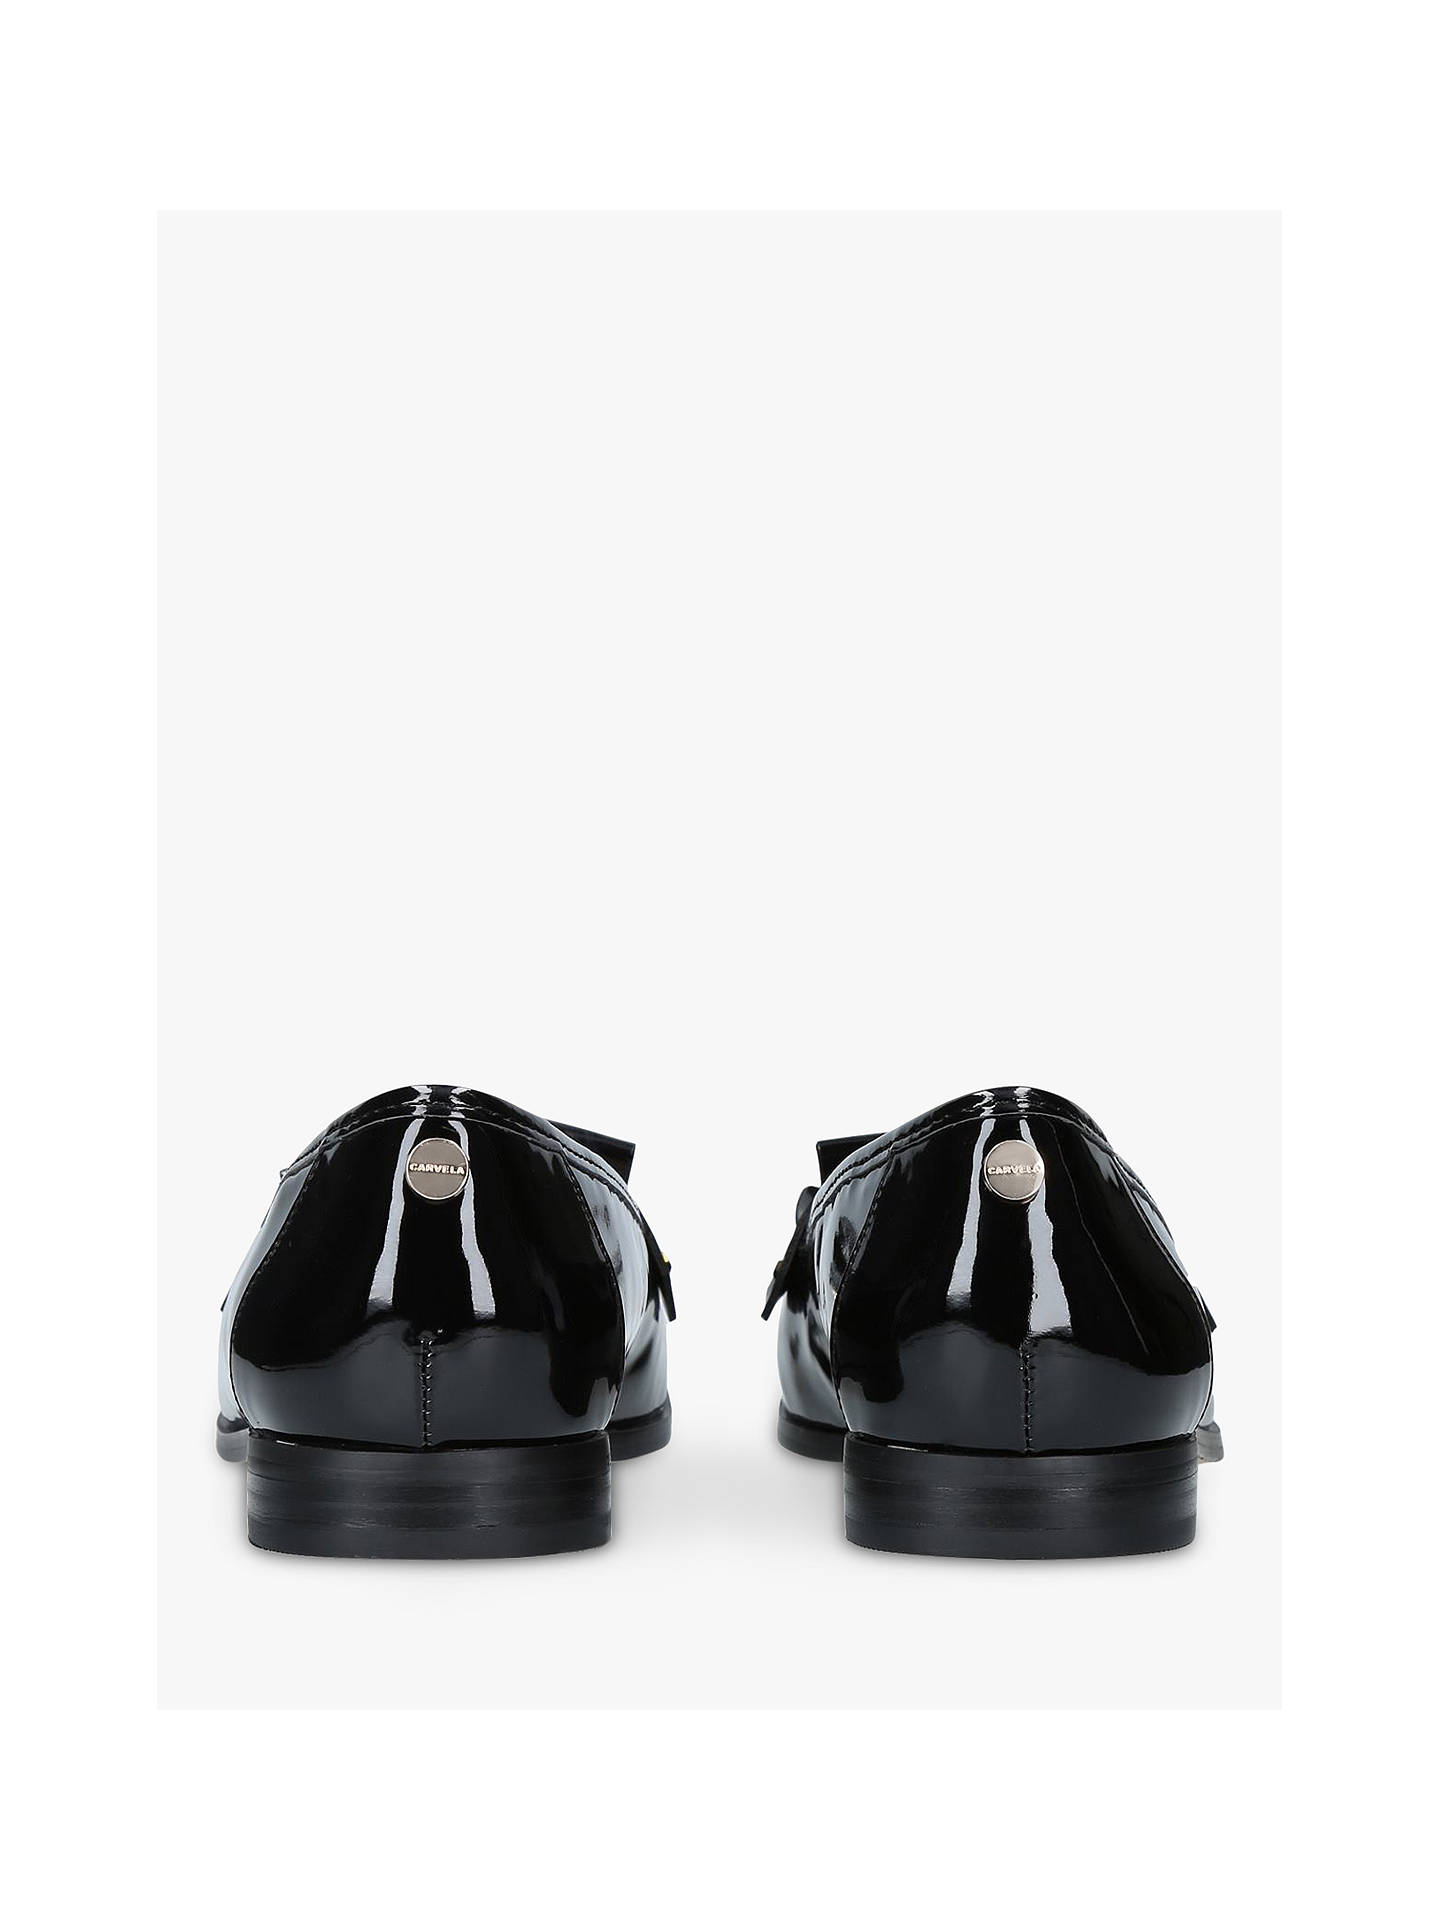 limited quantity sale online official store Carvela Magpie Tassel Loafers, Black at John Lewis & Partners